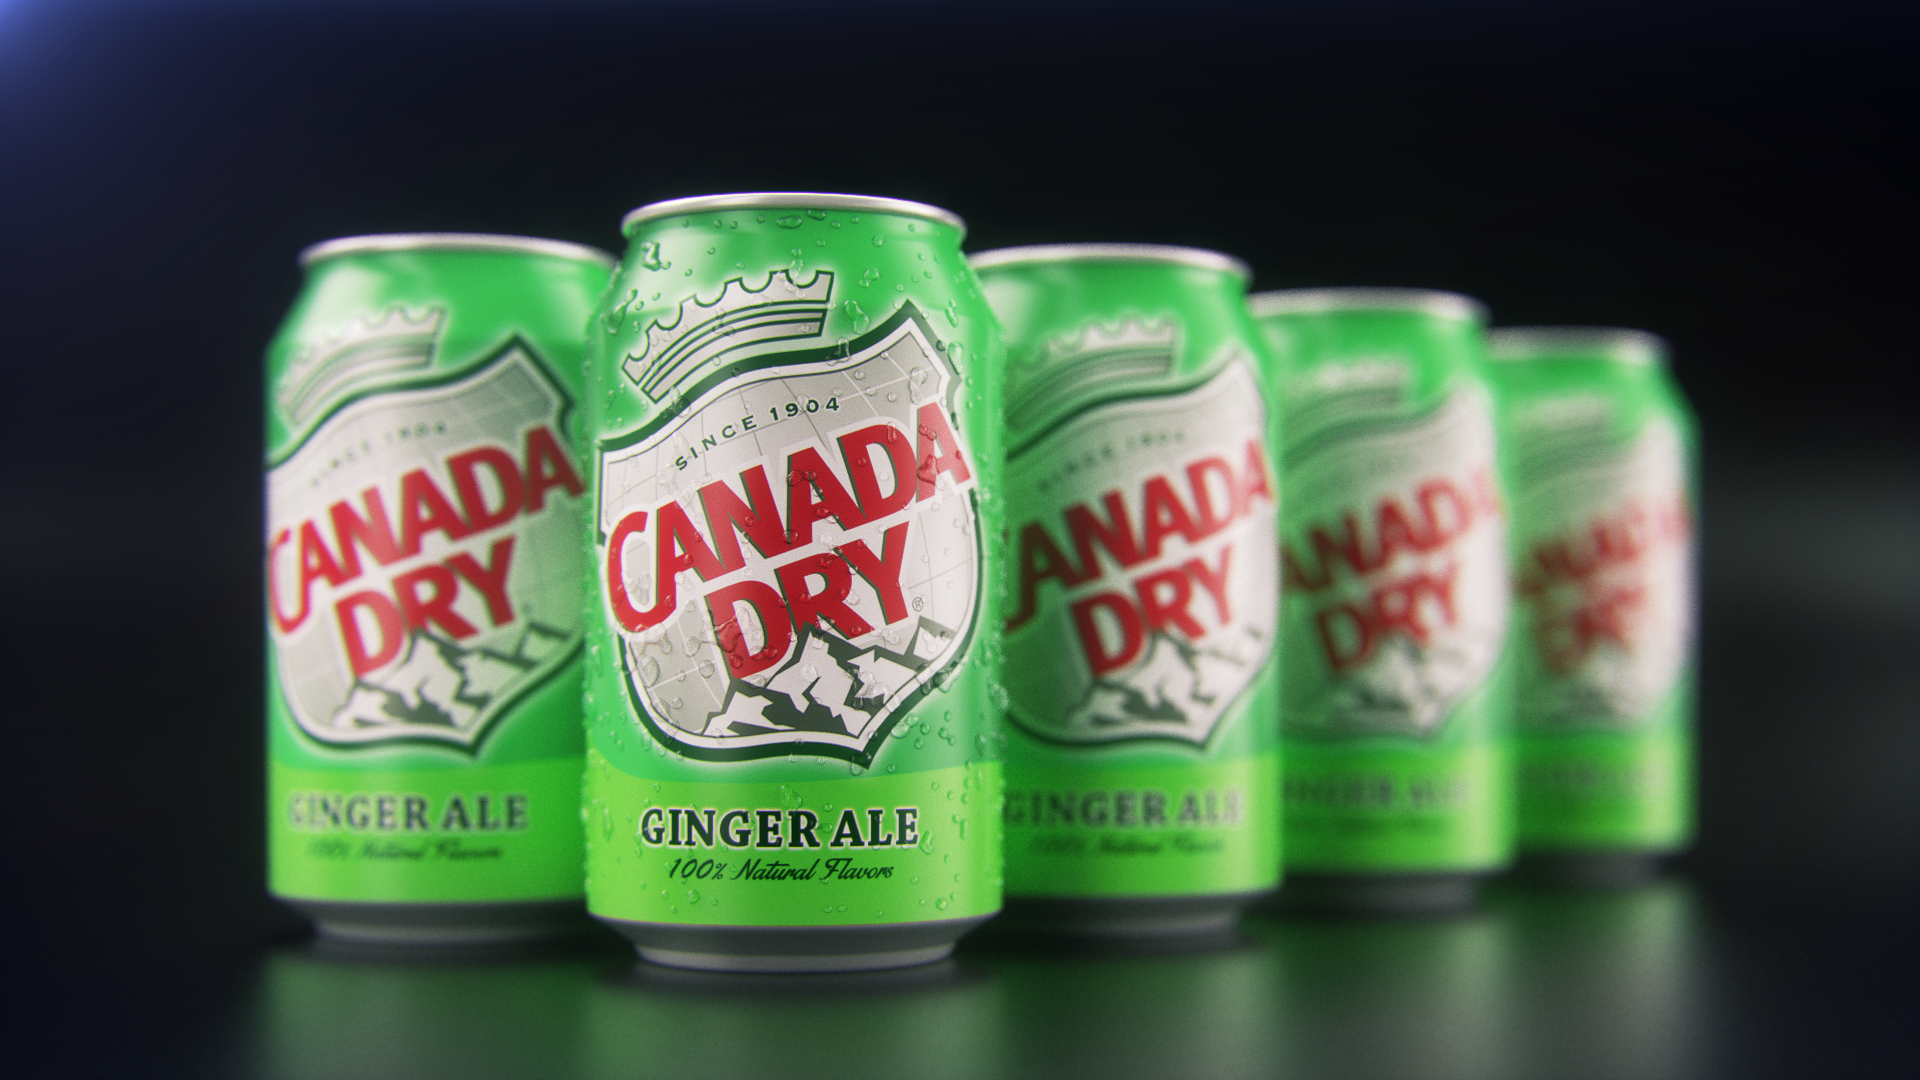 Canada dry packshot - Modeling and rendering with CInema 4d (Octane render) - post-production with After Effects